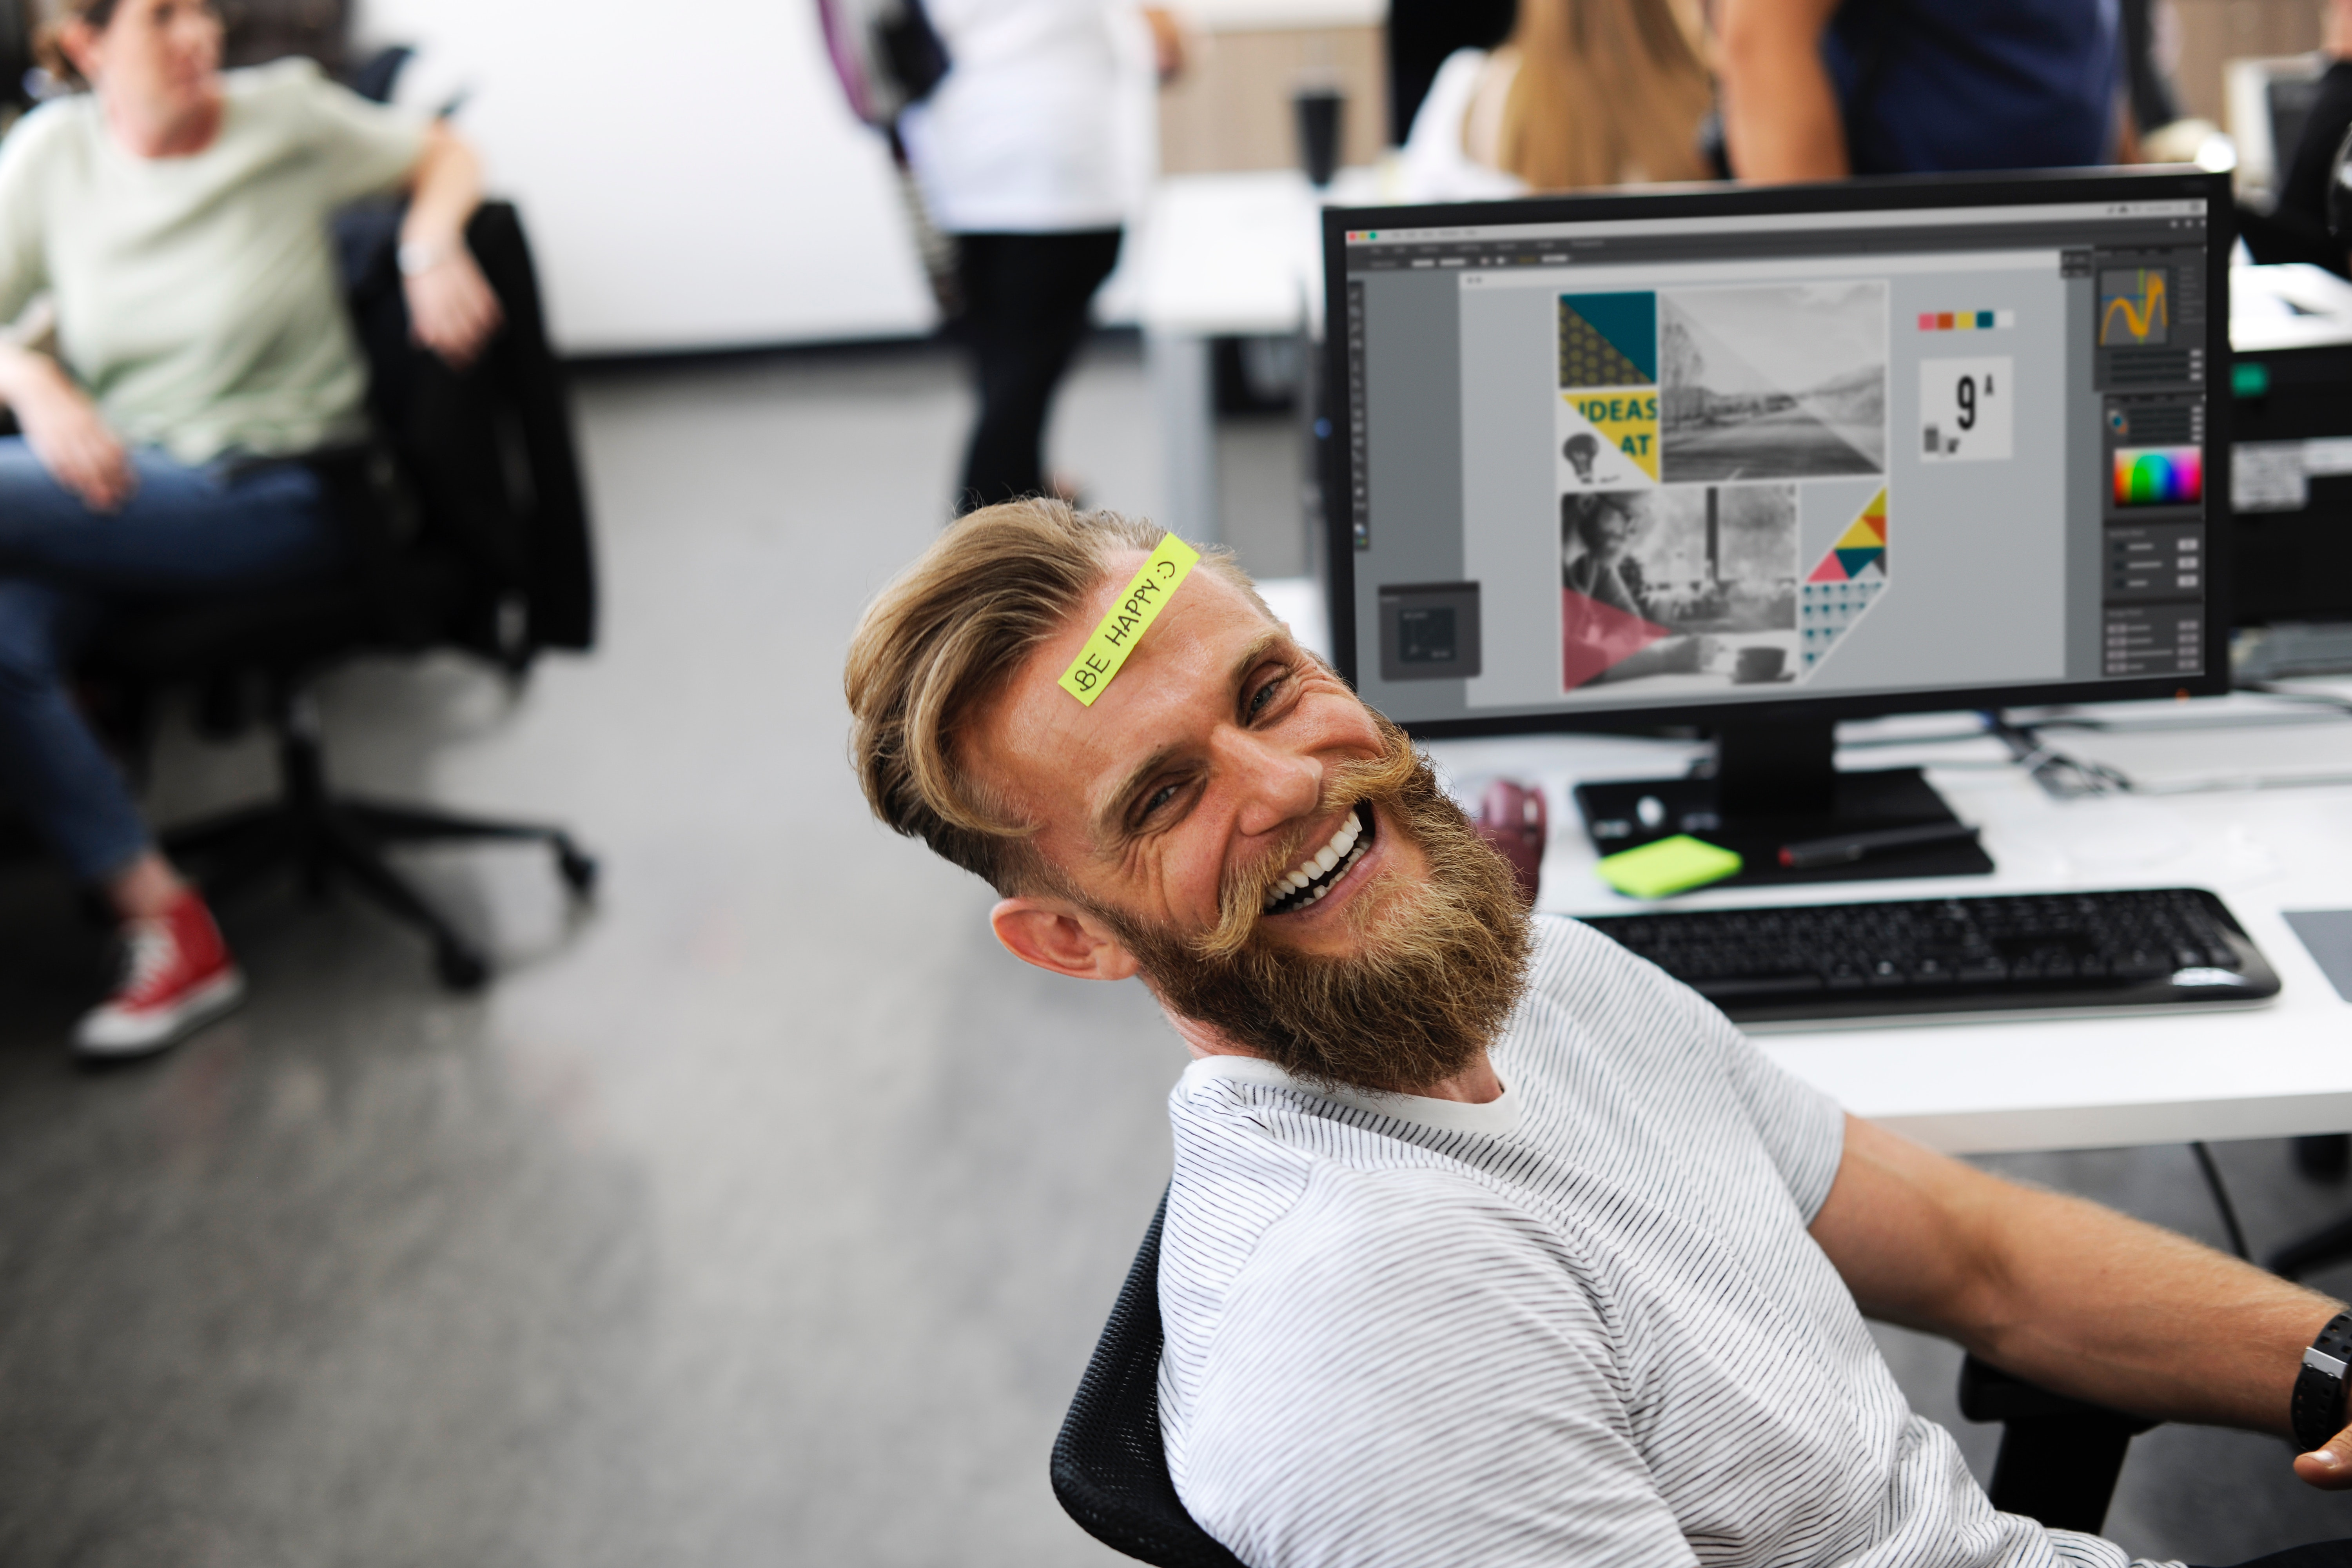 man is happy at work: positive reinforcement